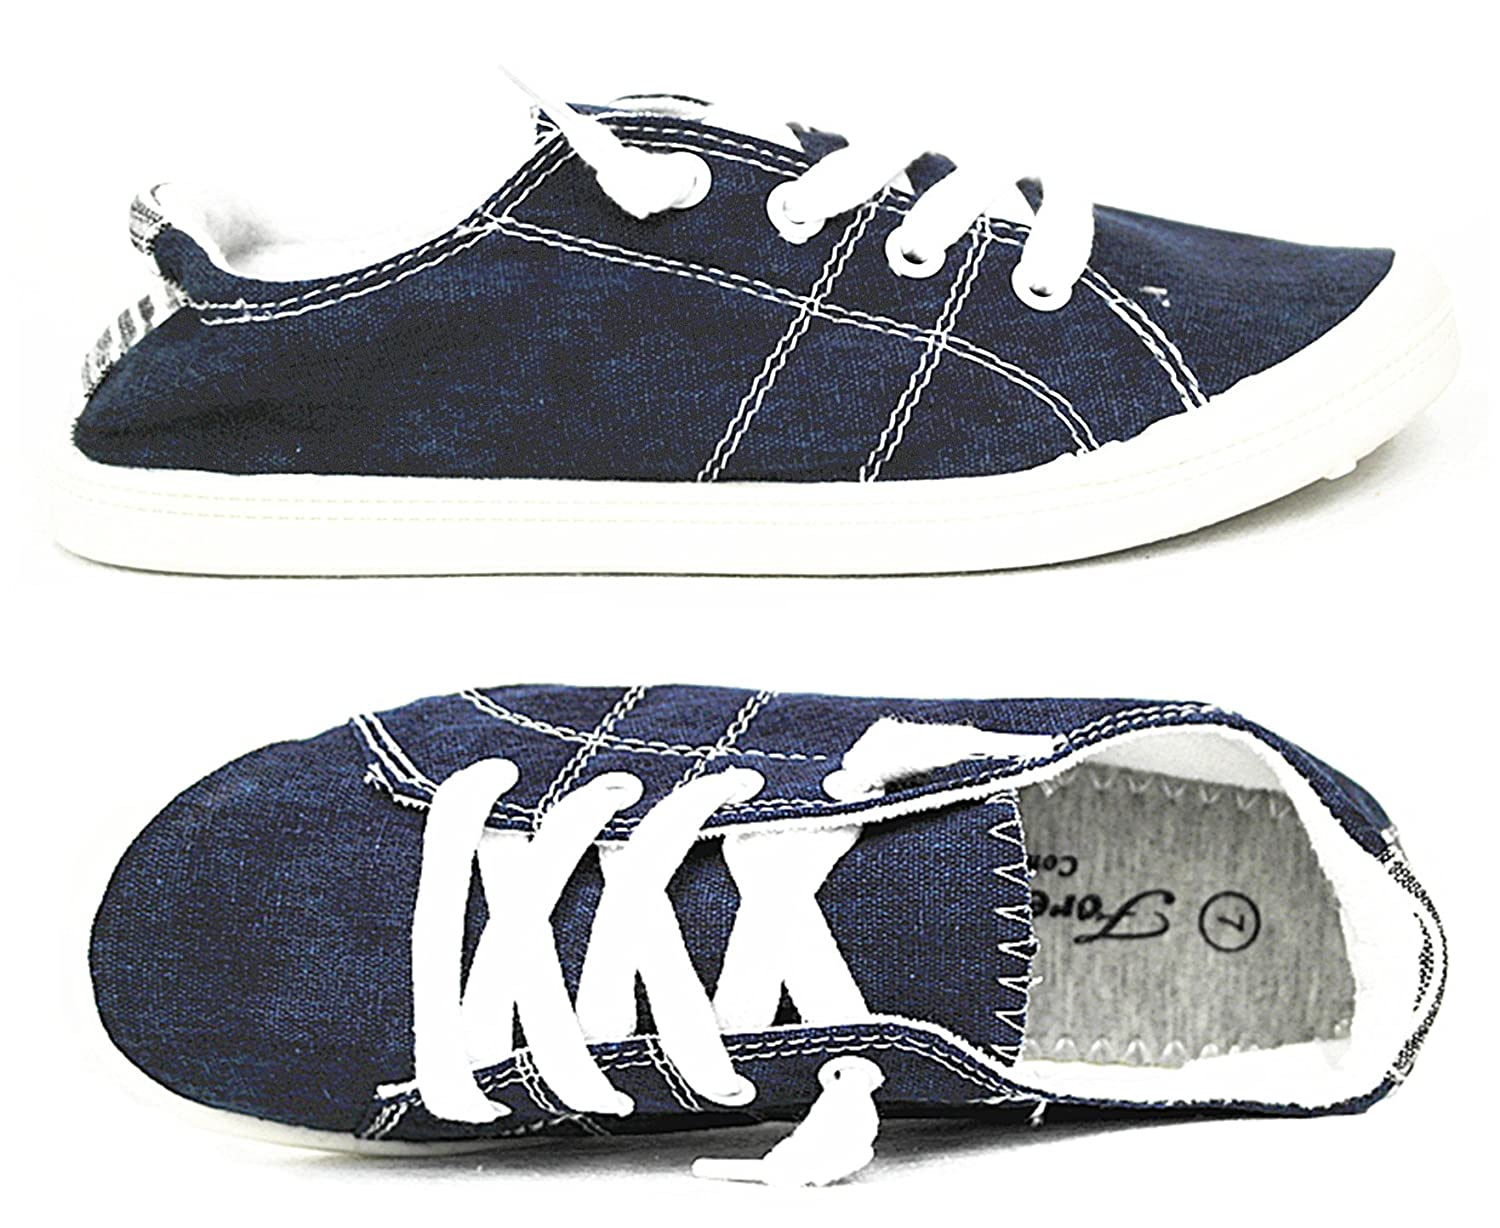 Forever Link Comfort Women's Lace up Casual Street Sneakers Flat Shoes B07DNK1JPF 11 B(M) US|Navy-01